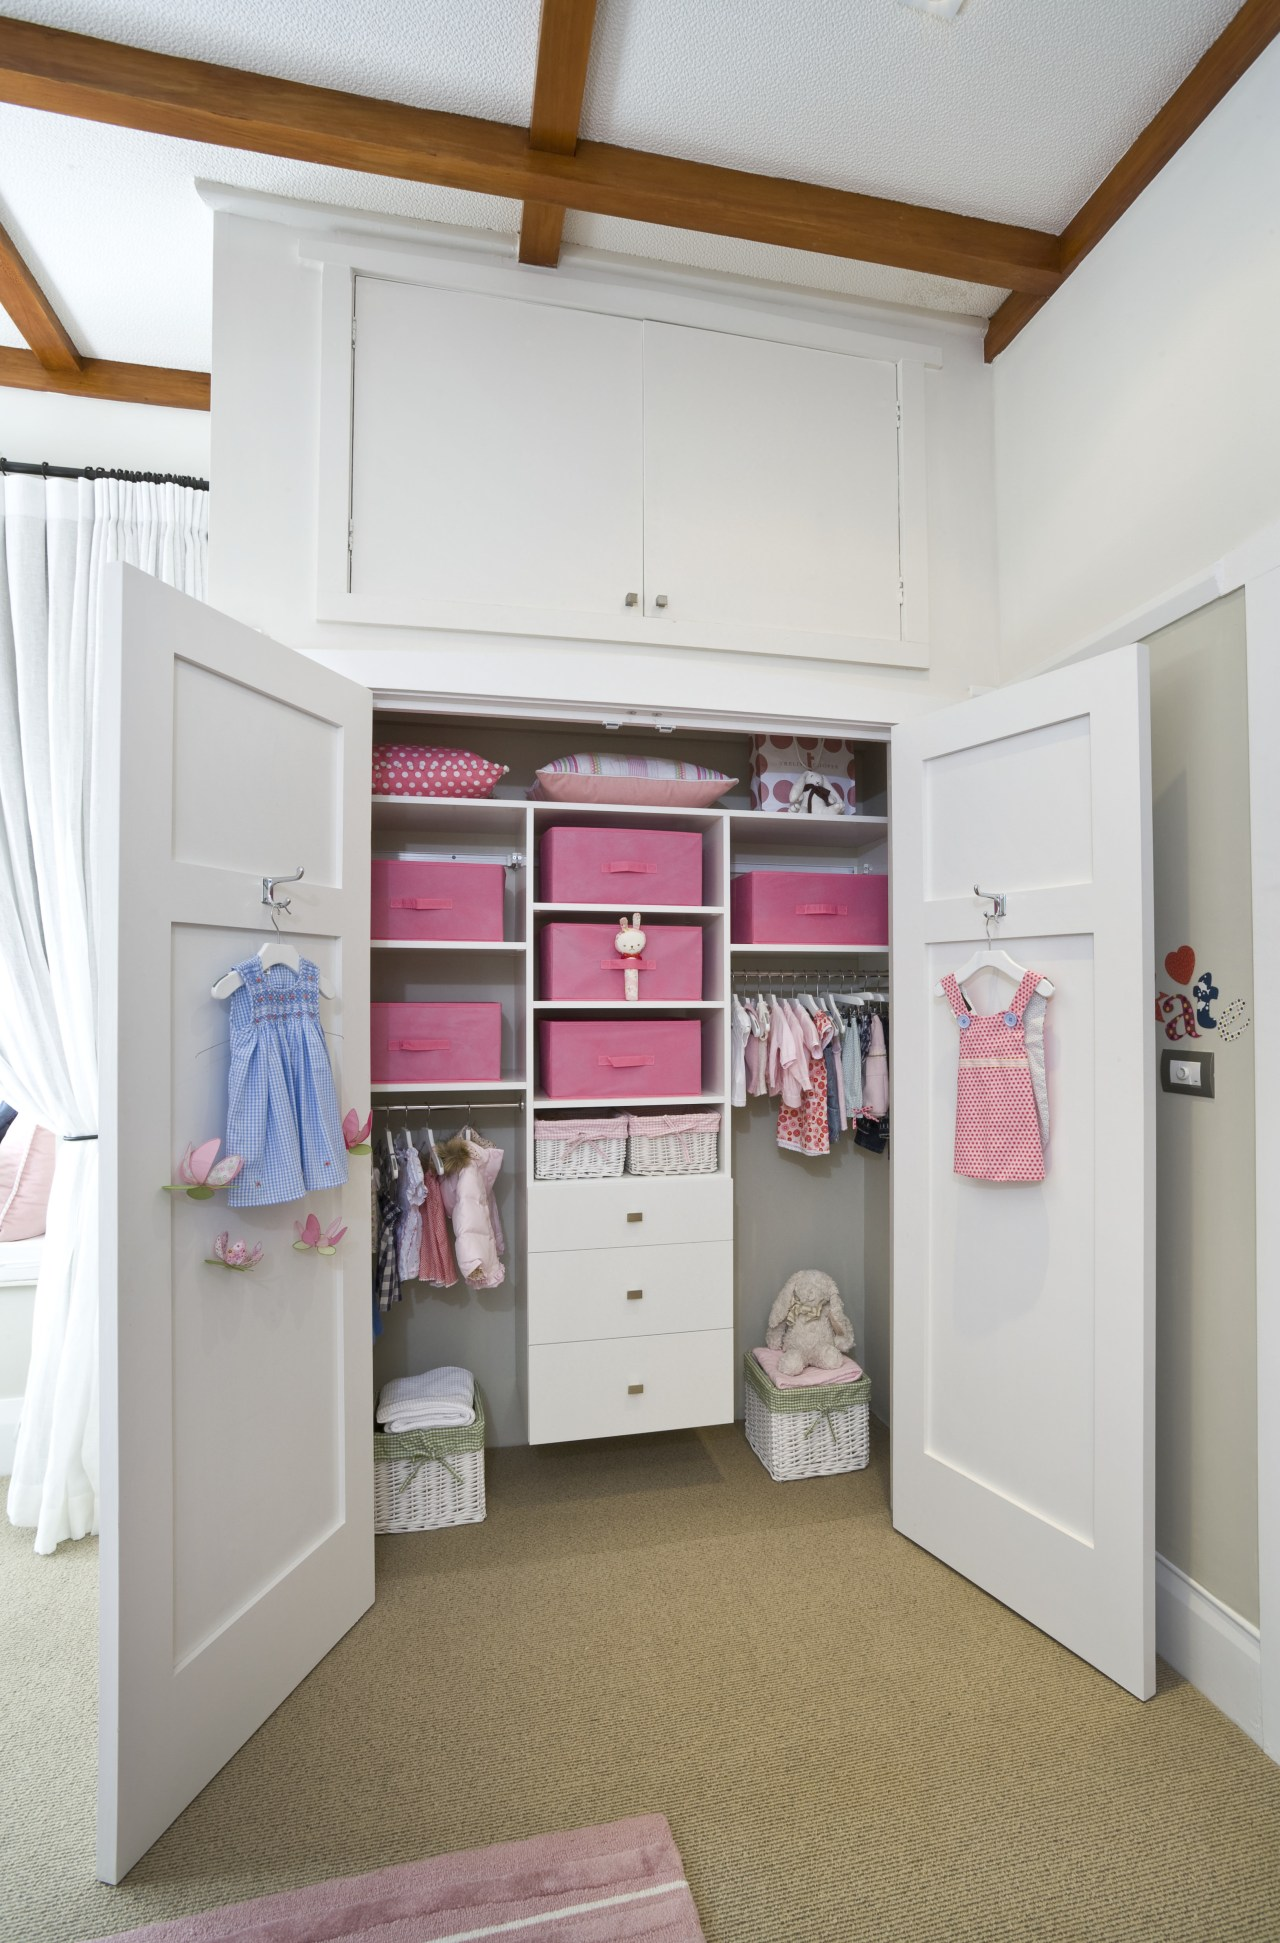 littie Girls room designed by Yellowfox. Manufactured by closet, furniture, product, room, shelf, shelving, gray